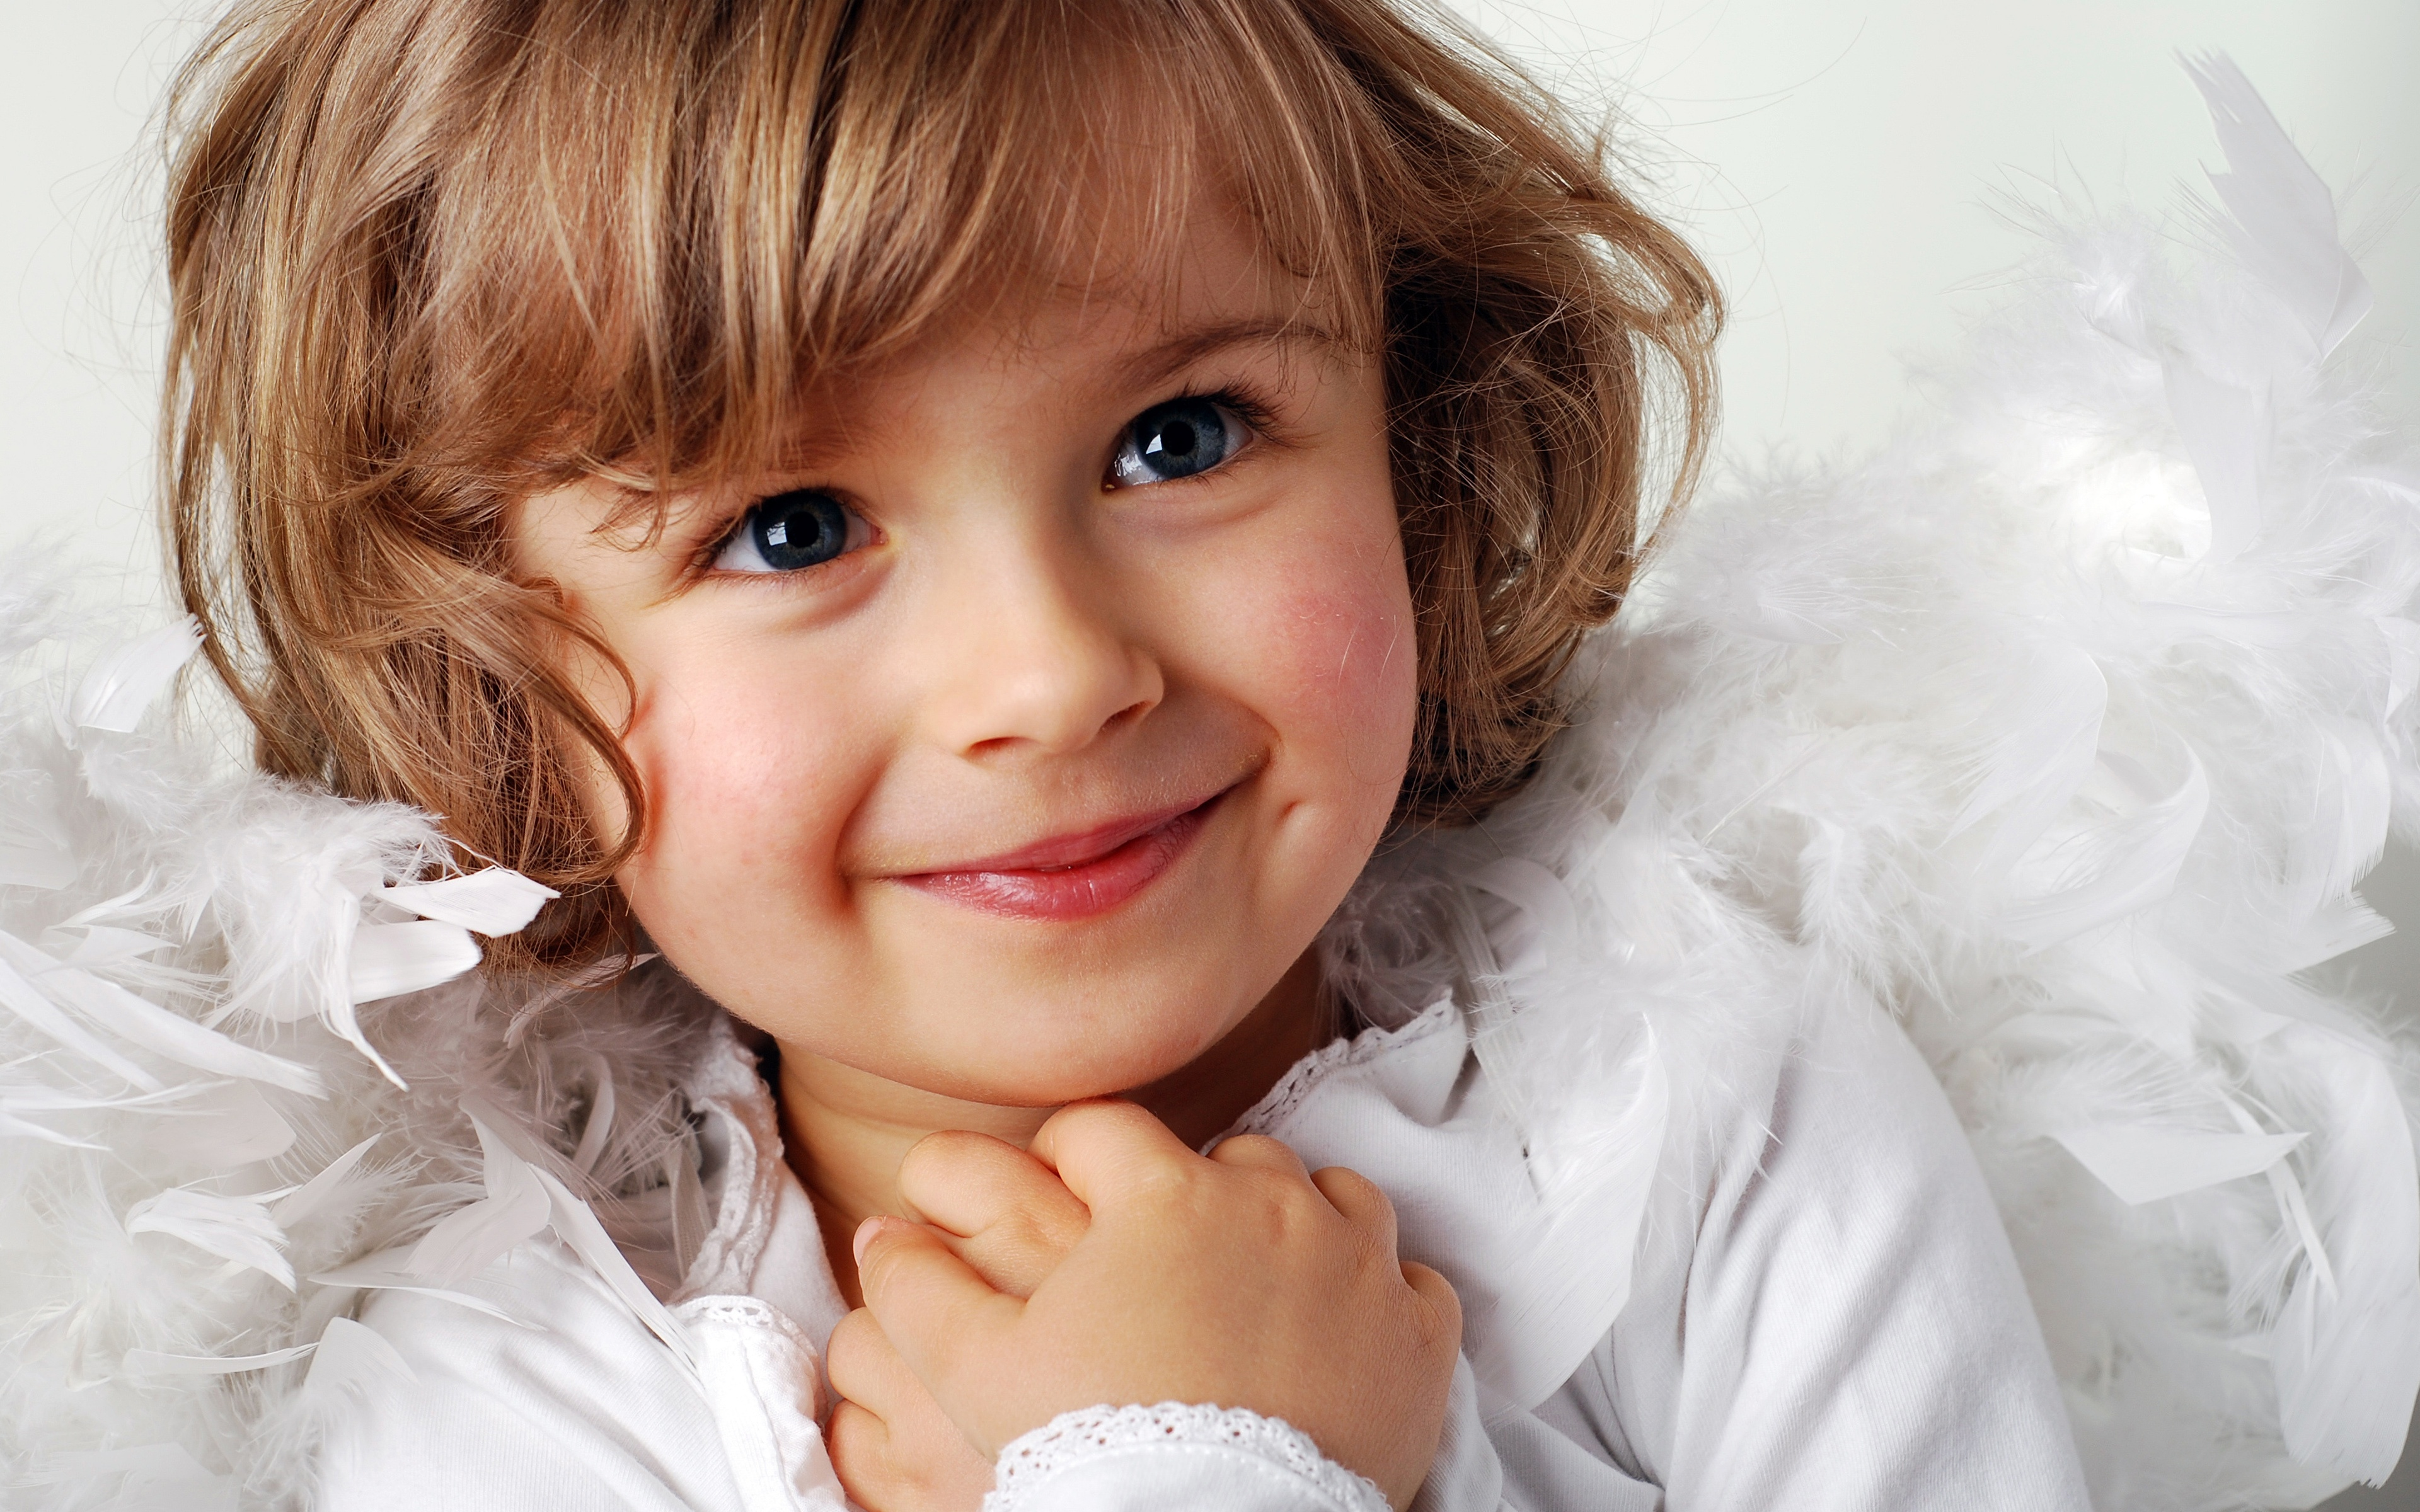 Cute Baby Girl Wallpapers Free Download